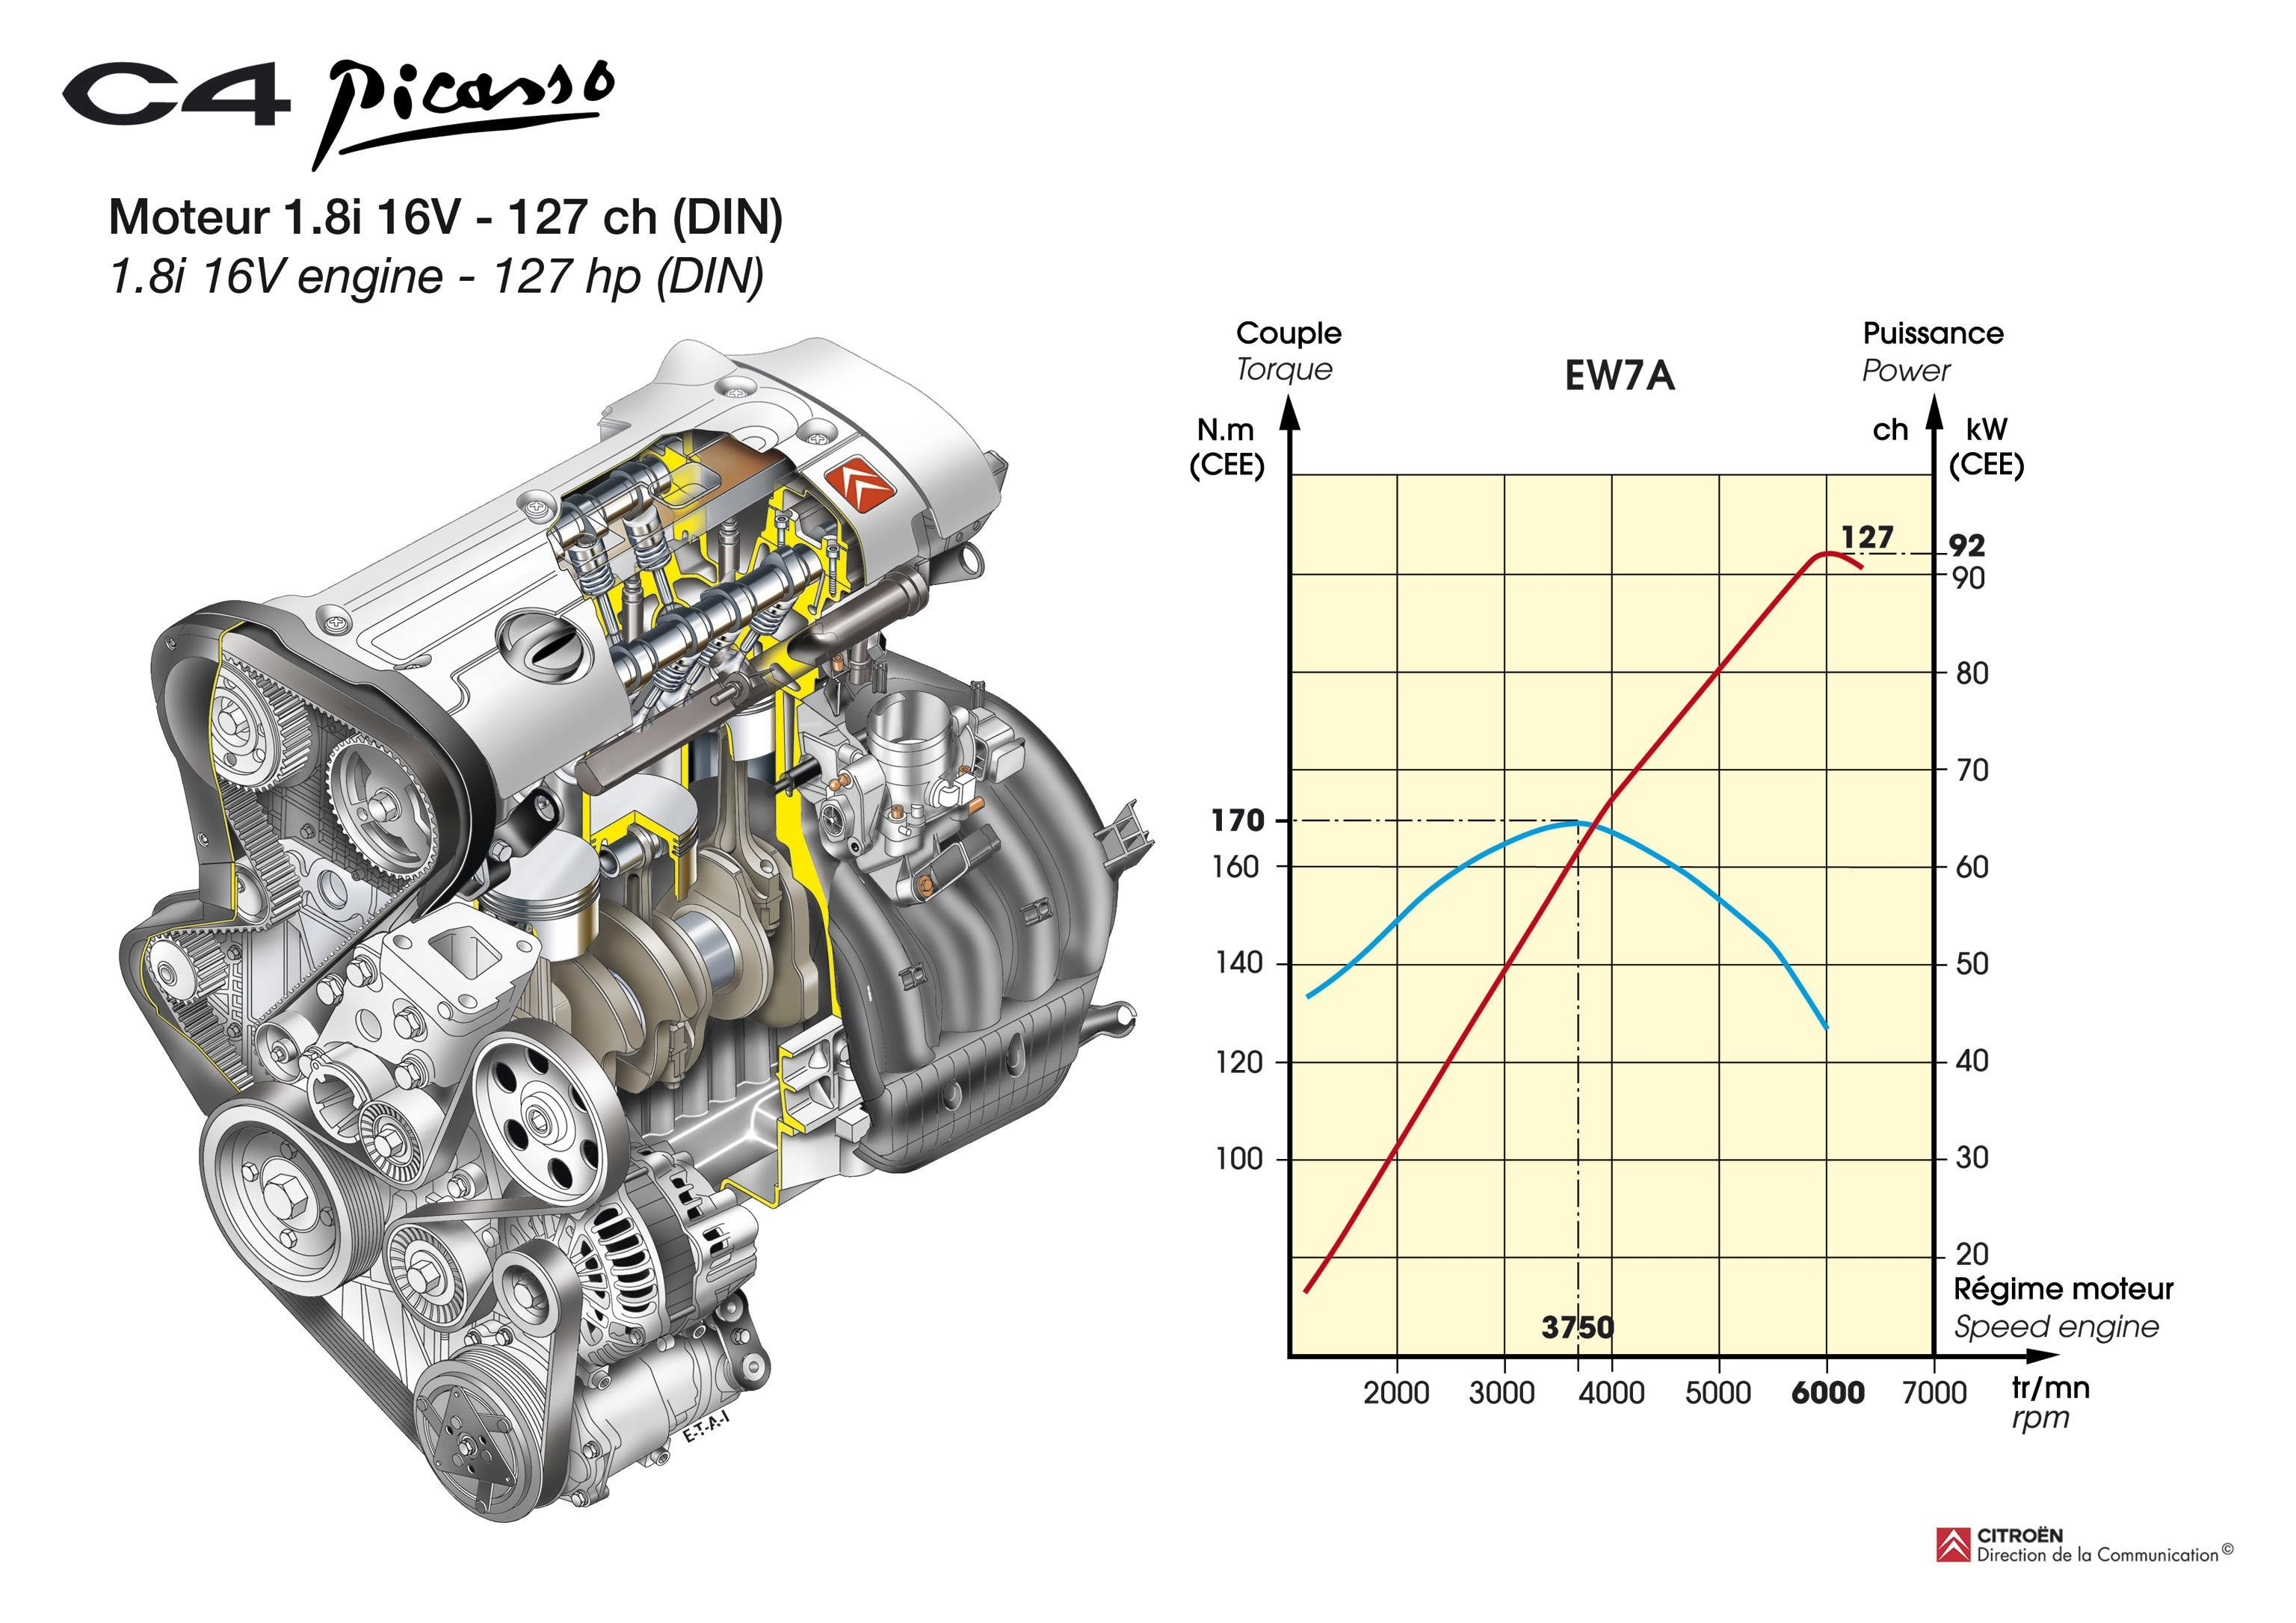 Citroen C4 Engine Diagram 2007 Citroen C4 Picasso Of Citroen C4 Engine Diagram